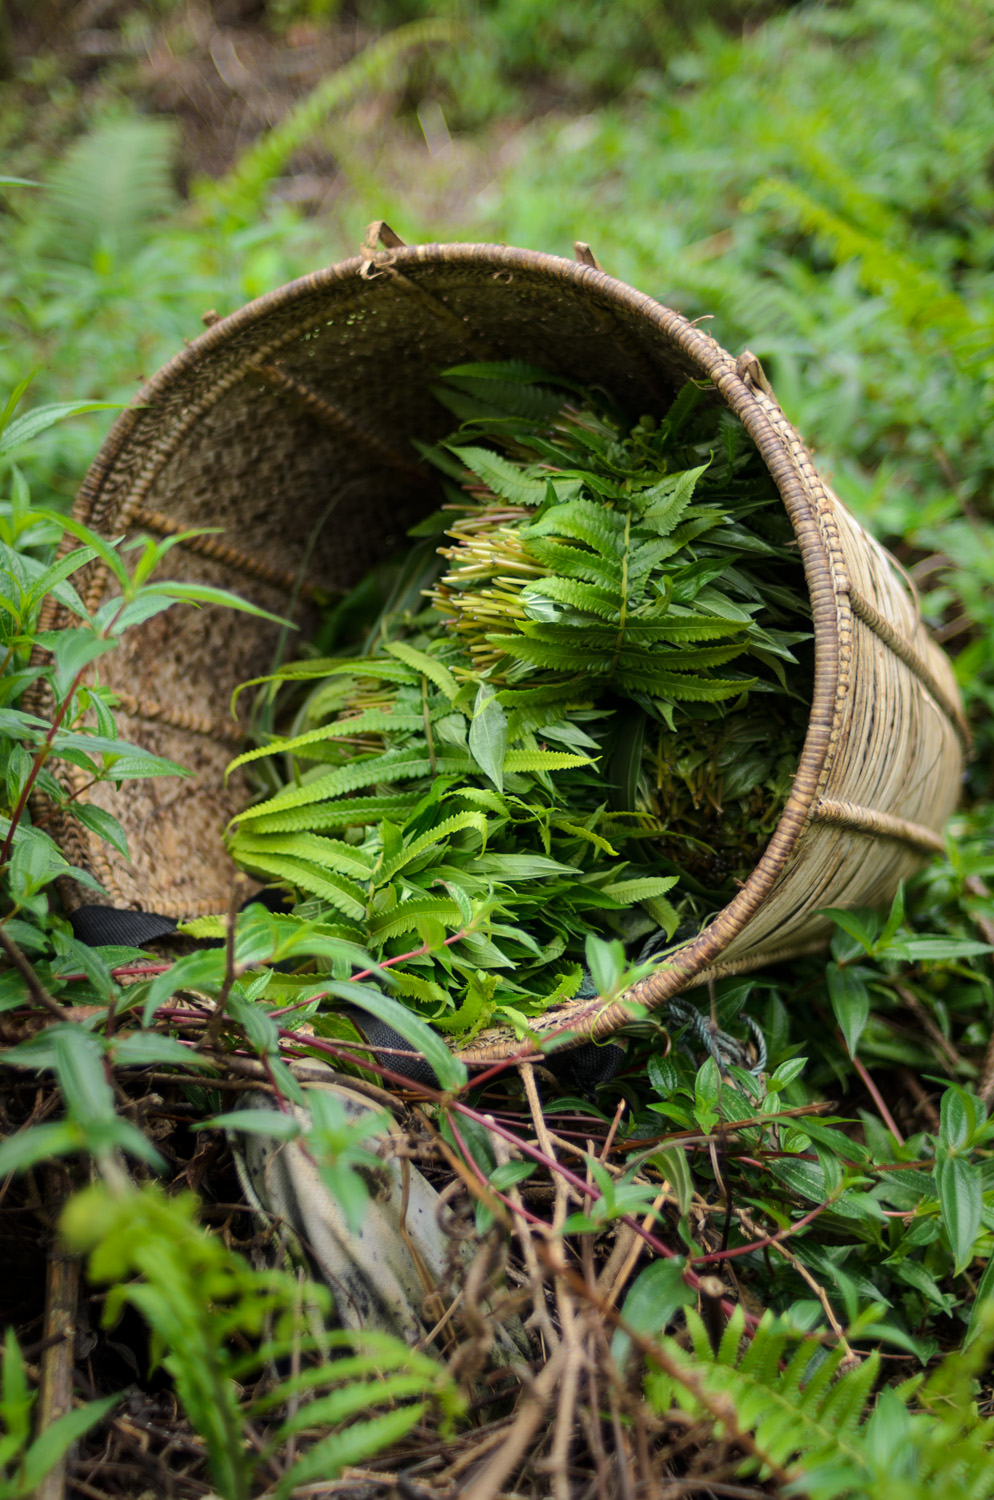 Wild ferns and other herbs and vegetables collected in the jungle forests near Bario, Sarawak, Malaysia.